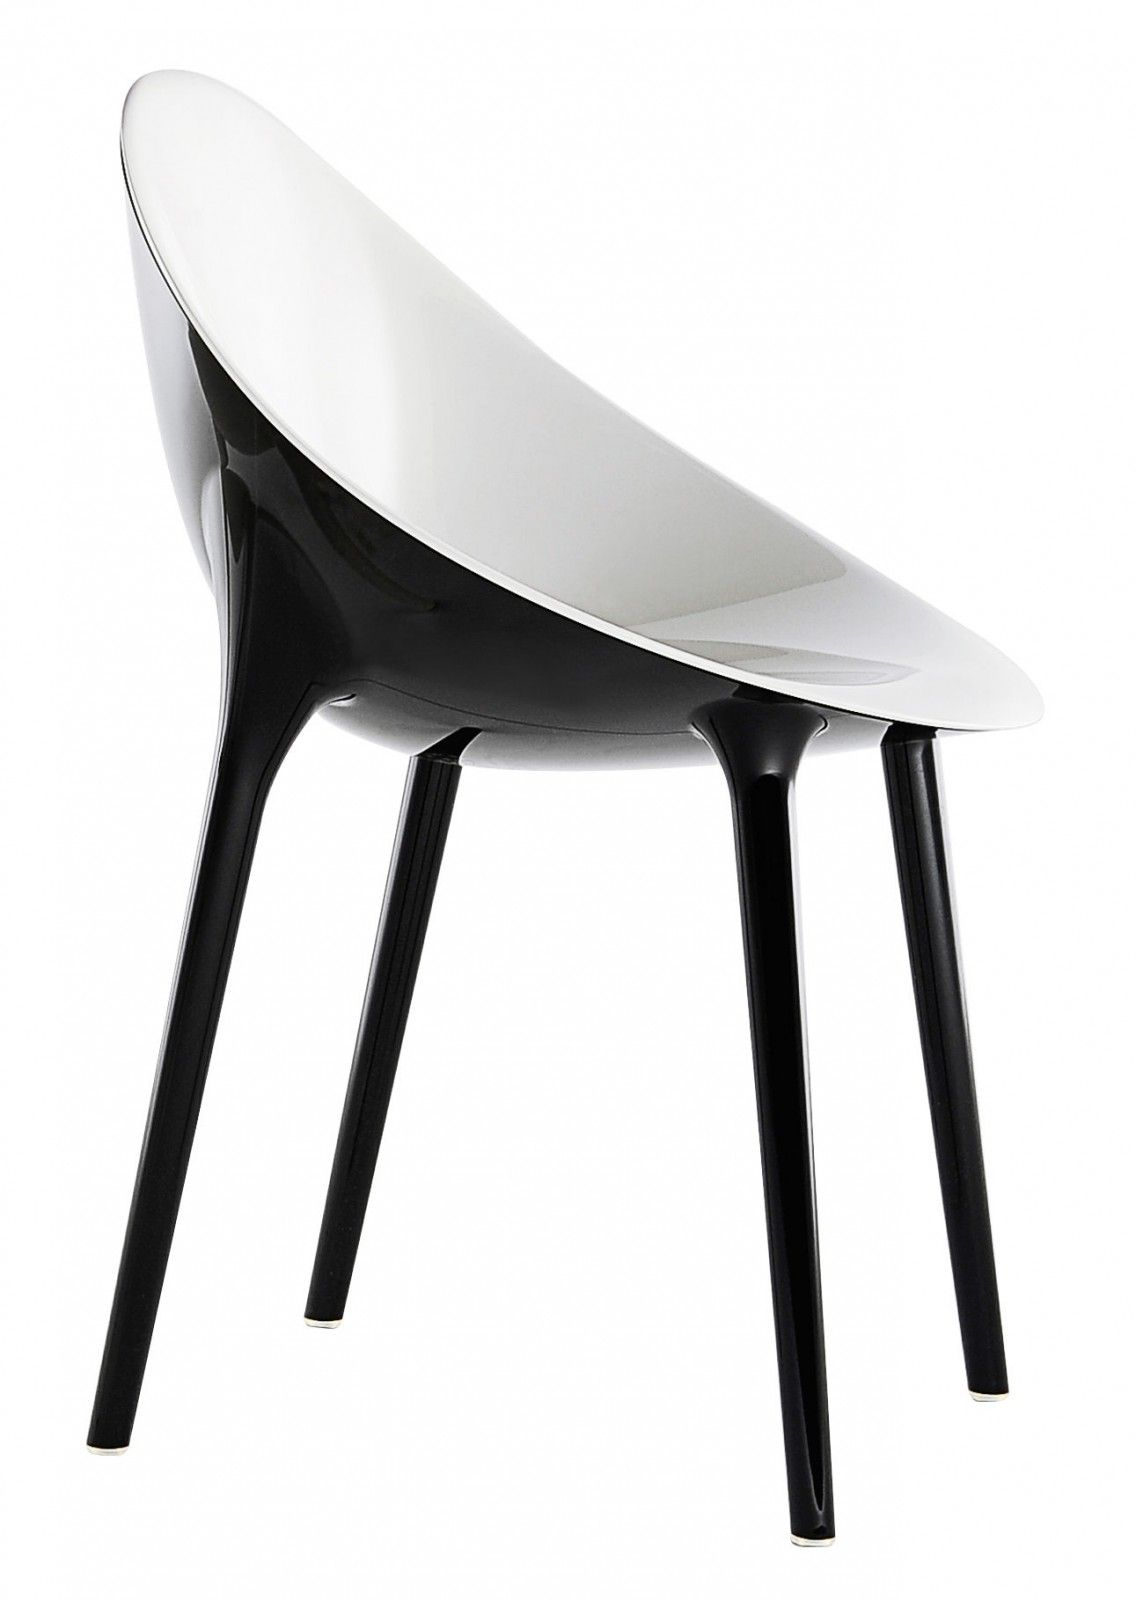 Chaise int rieur et ext rieur outdoor super impossible design philippe starck par kartell la - La magie de la conception de meubles de salon ...